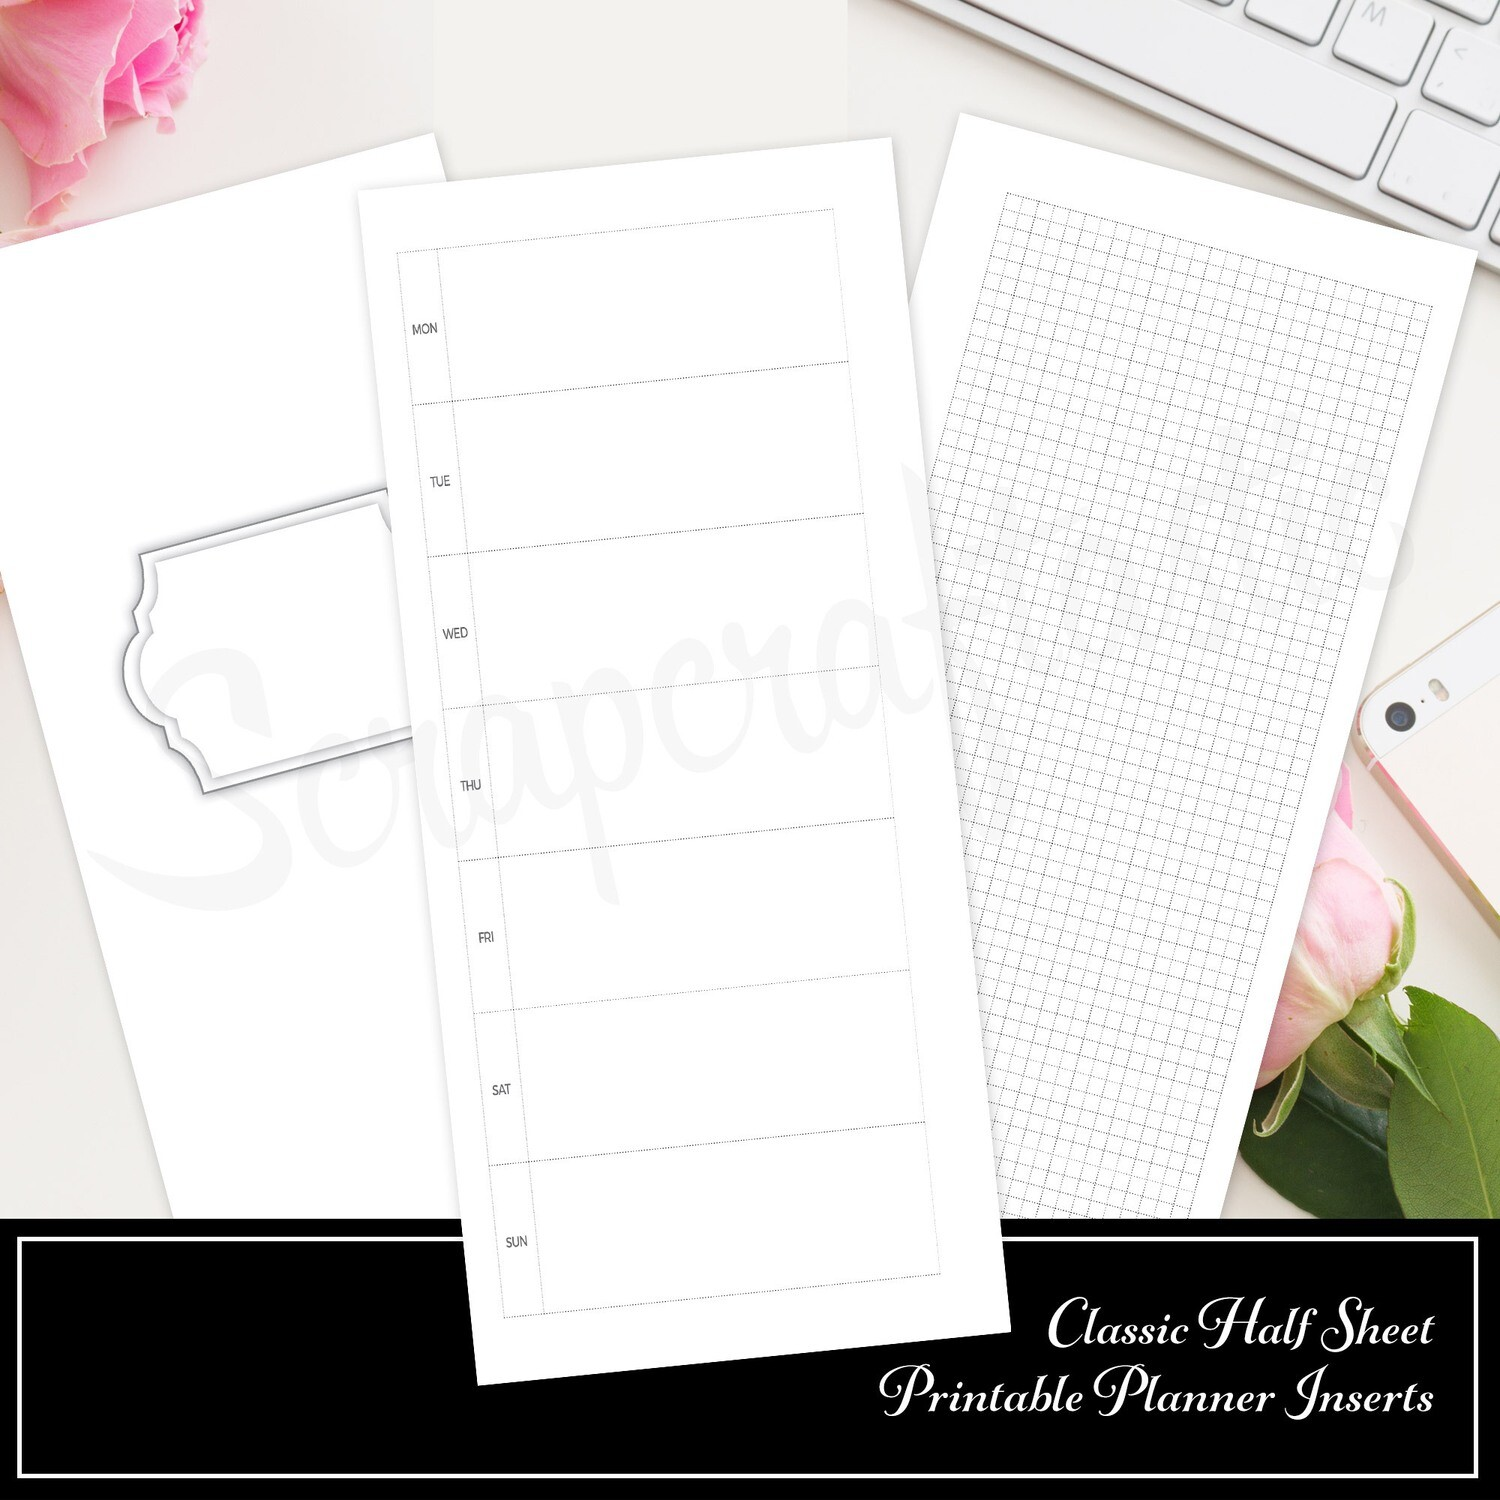 CLASSIC HALF SHEET - Hobo Style Undated Weekly Printable Planner Insert